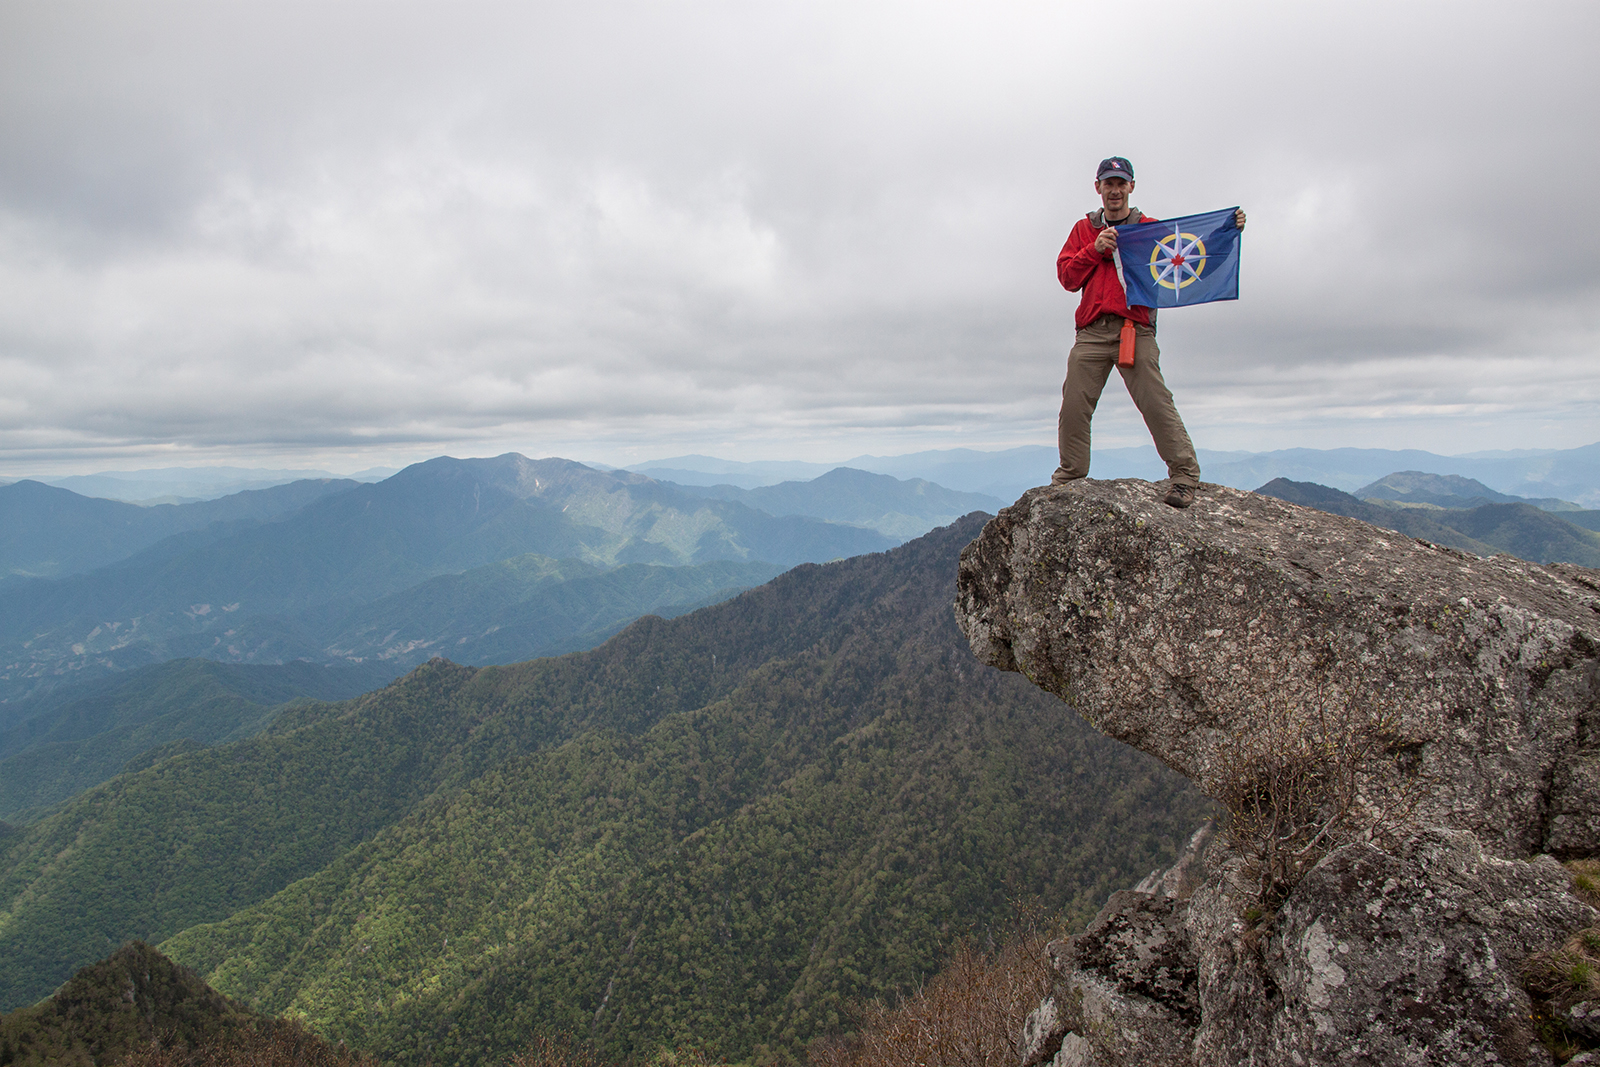 George Kourounis displays the flag of the RCGS atop Piro Peak, the tallest point in the Myohyang Mountains of central North Korea. (Photo courtesy George Kourounis)